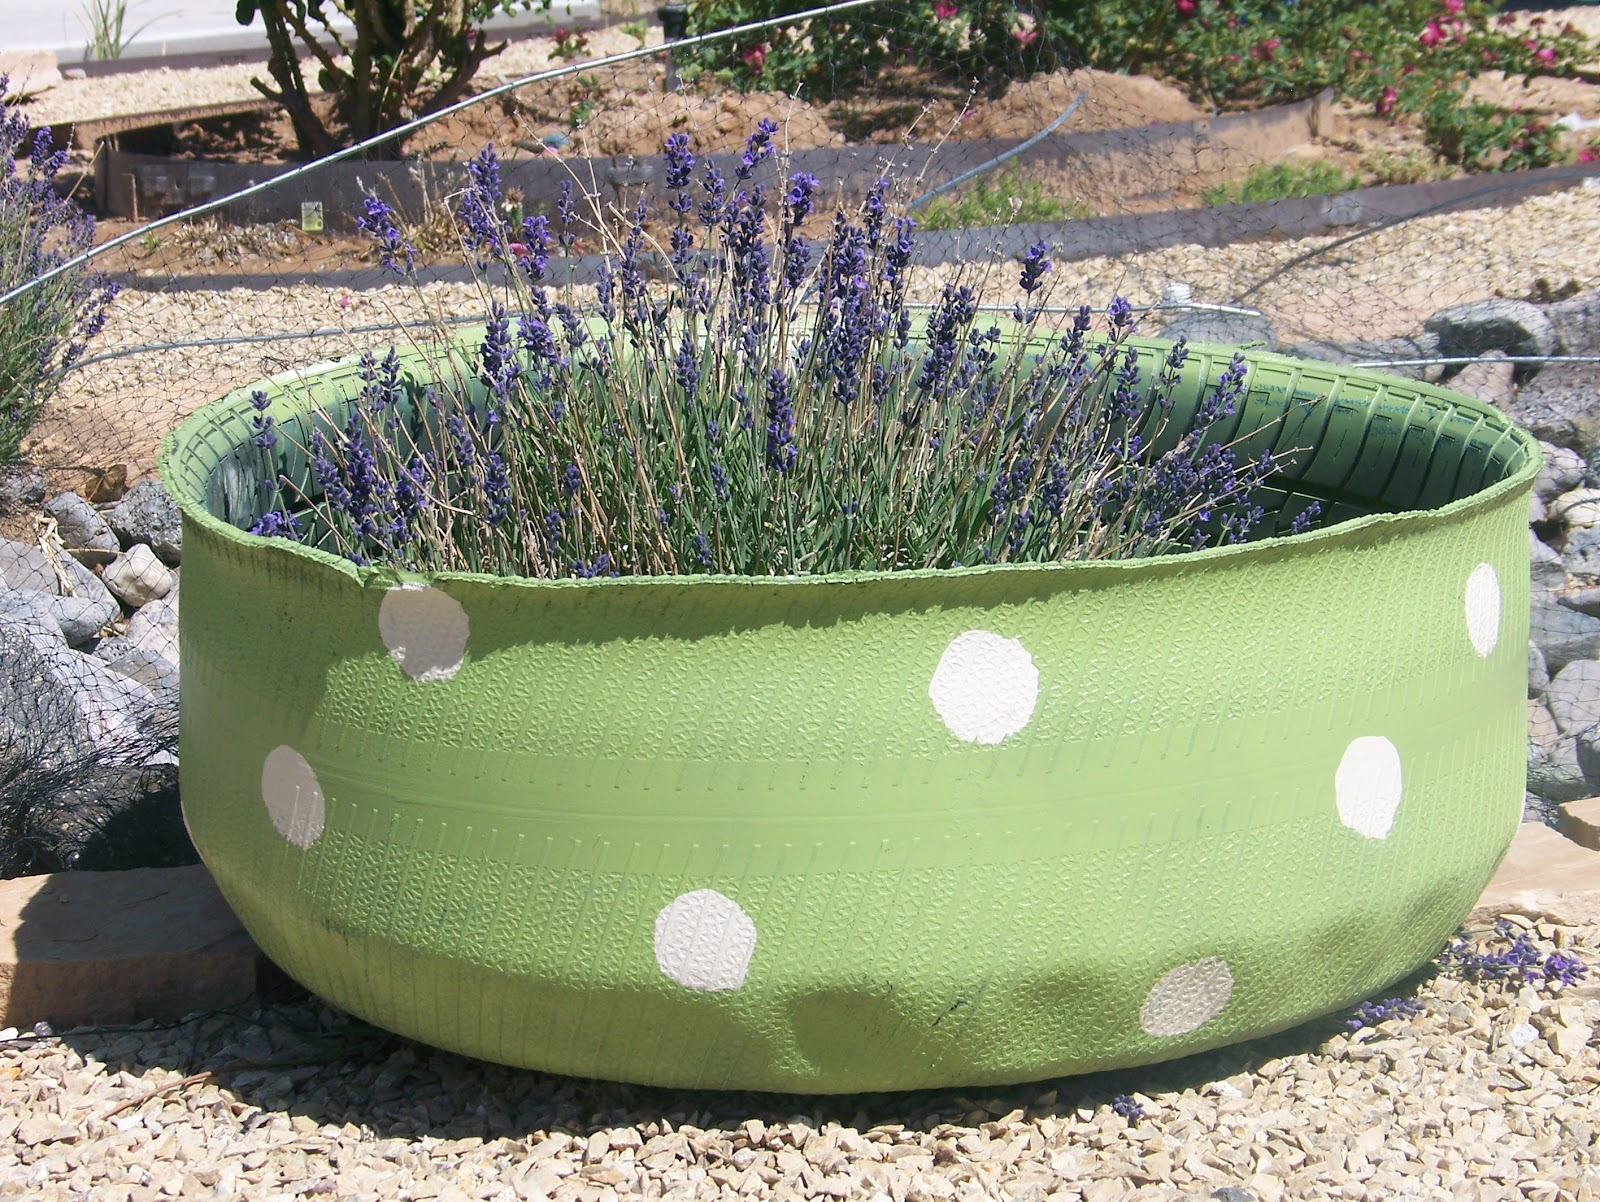 Maisies daisies upcycled tire planters for Using tyres as planters